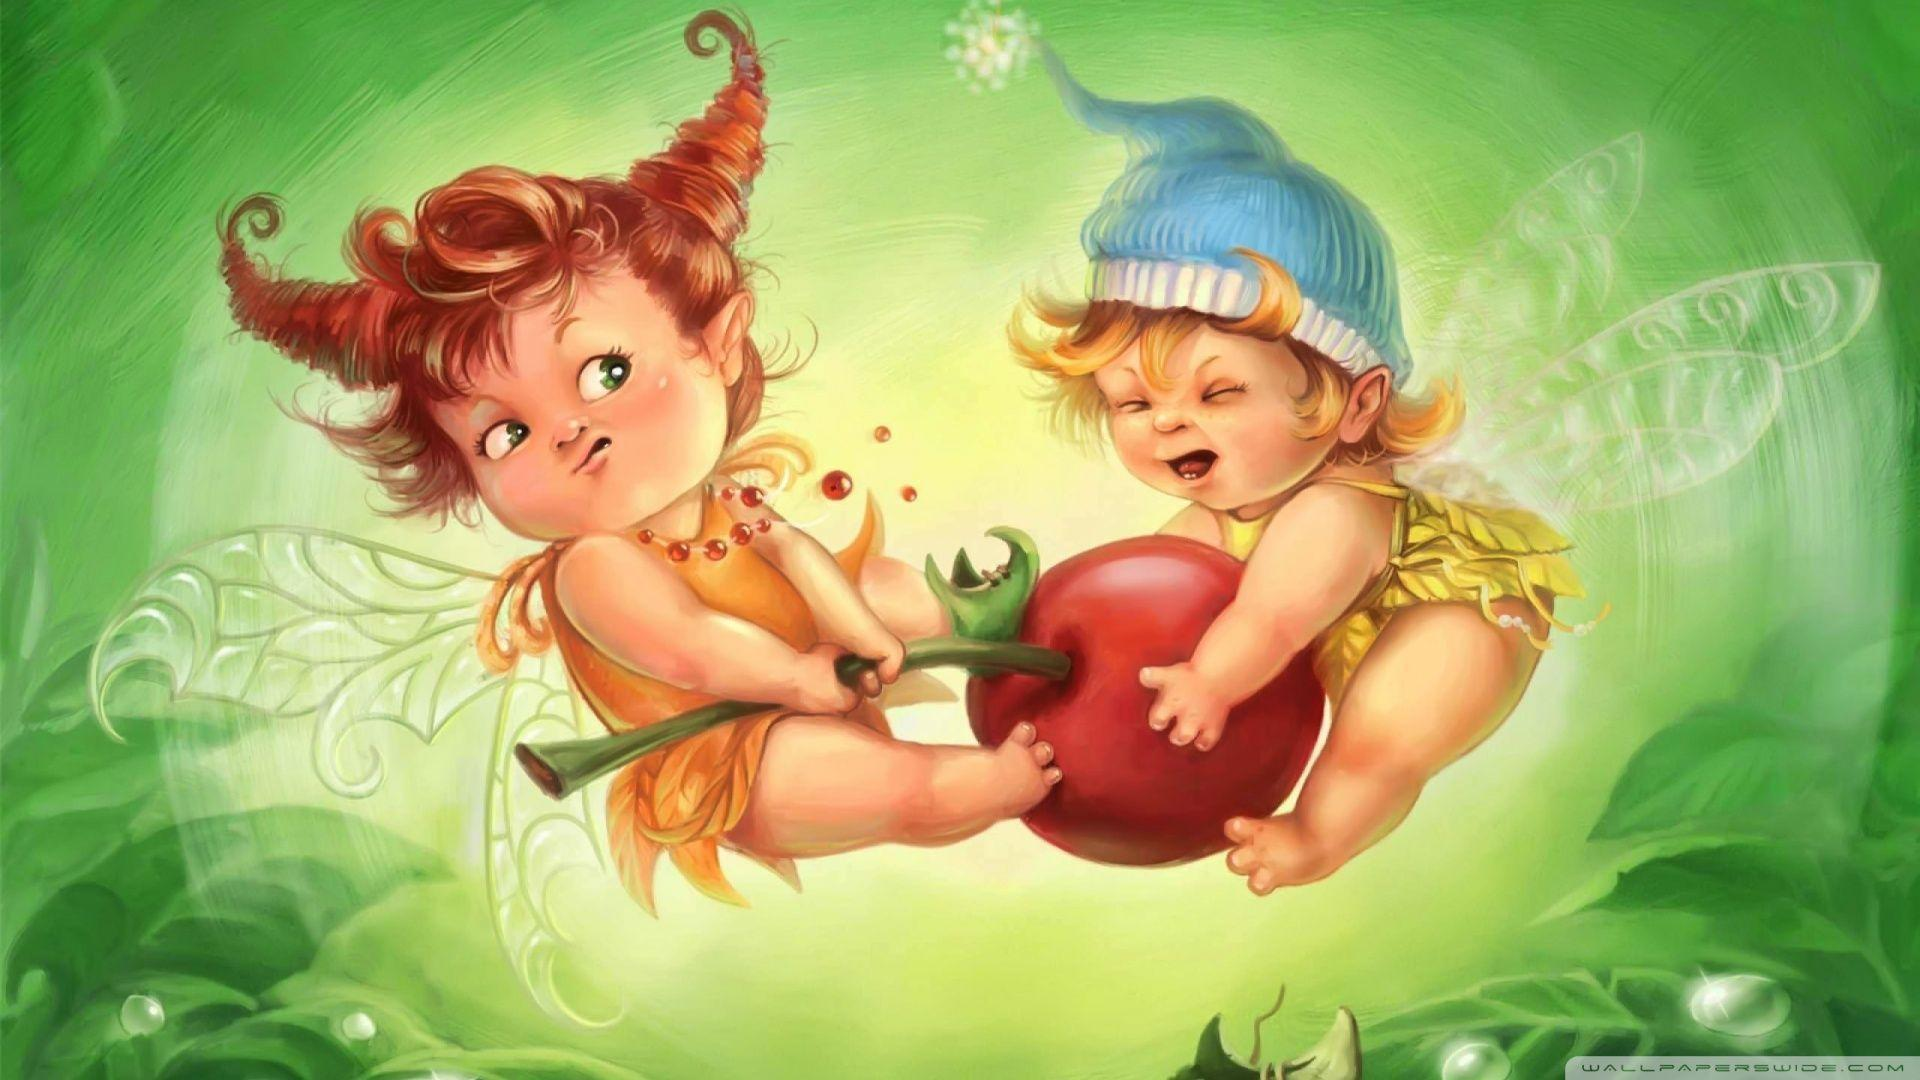 Cute Little Fairy Wallpaper Fairy Wallpapers For Desktop Wallpaper Cave